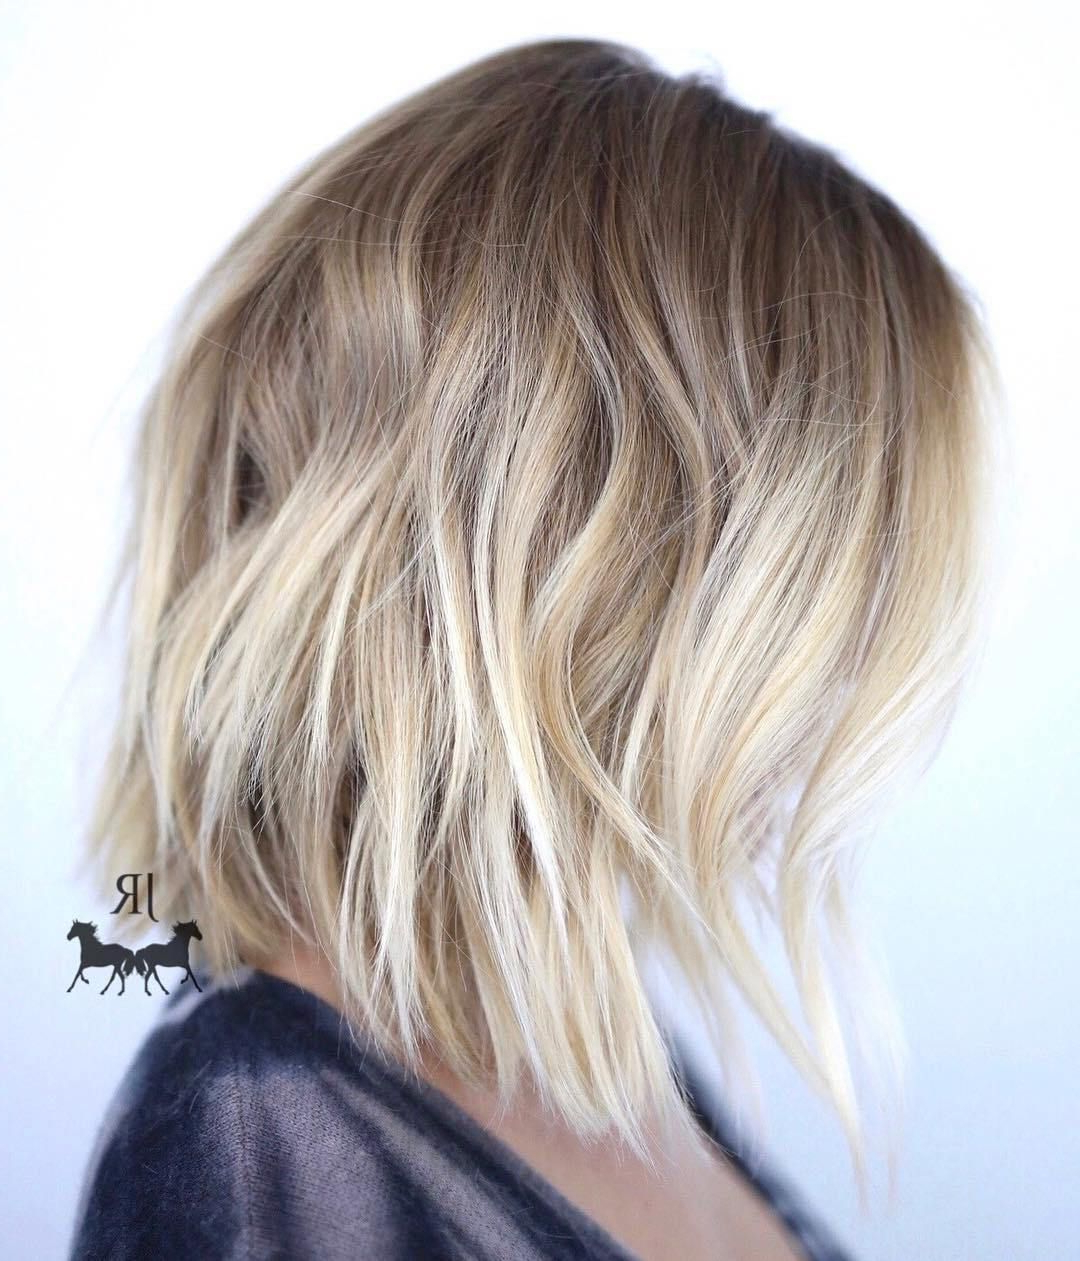 60 Beautiful And Convenient Medium Bob Hairstyles | Choppy Inside Choppy Bob Hairstyles With Blonde Ends (View 6 of 20)